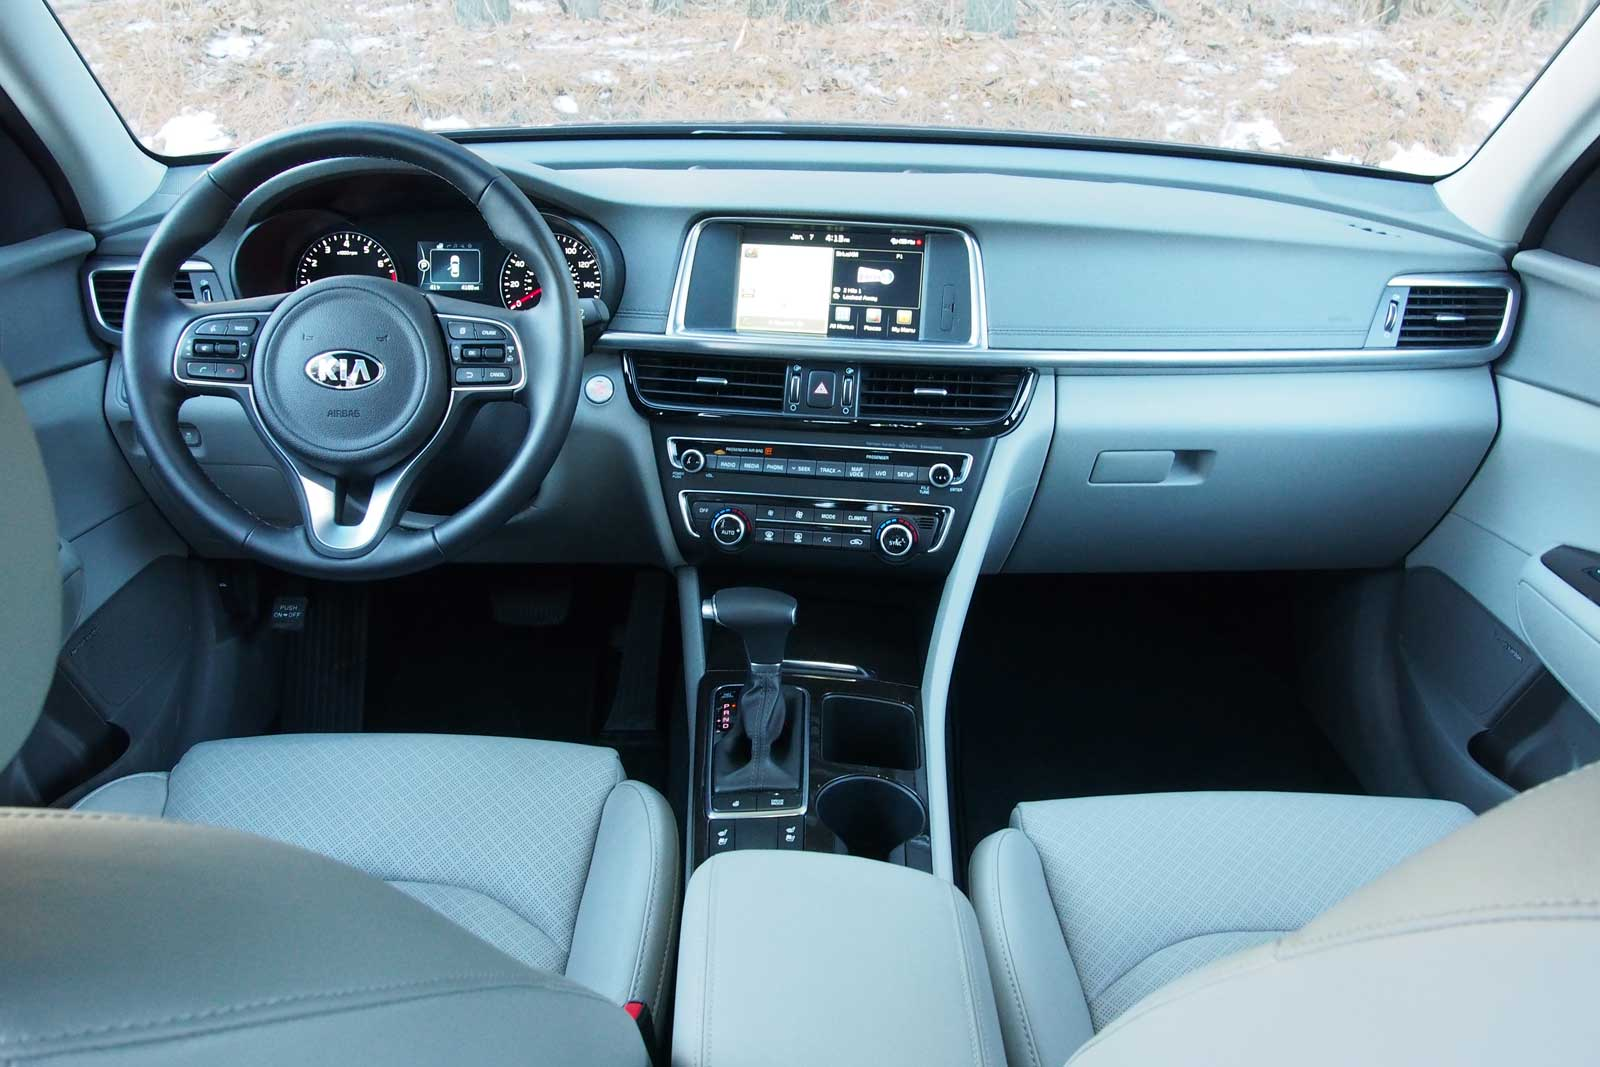 2016 Kia Optima Interior 02